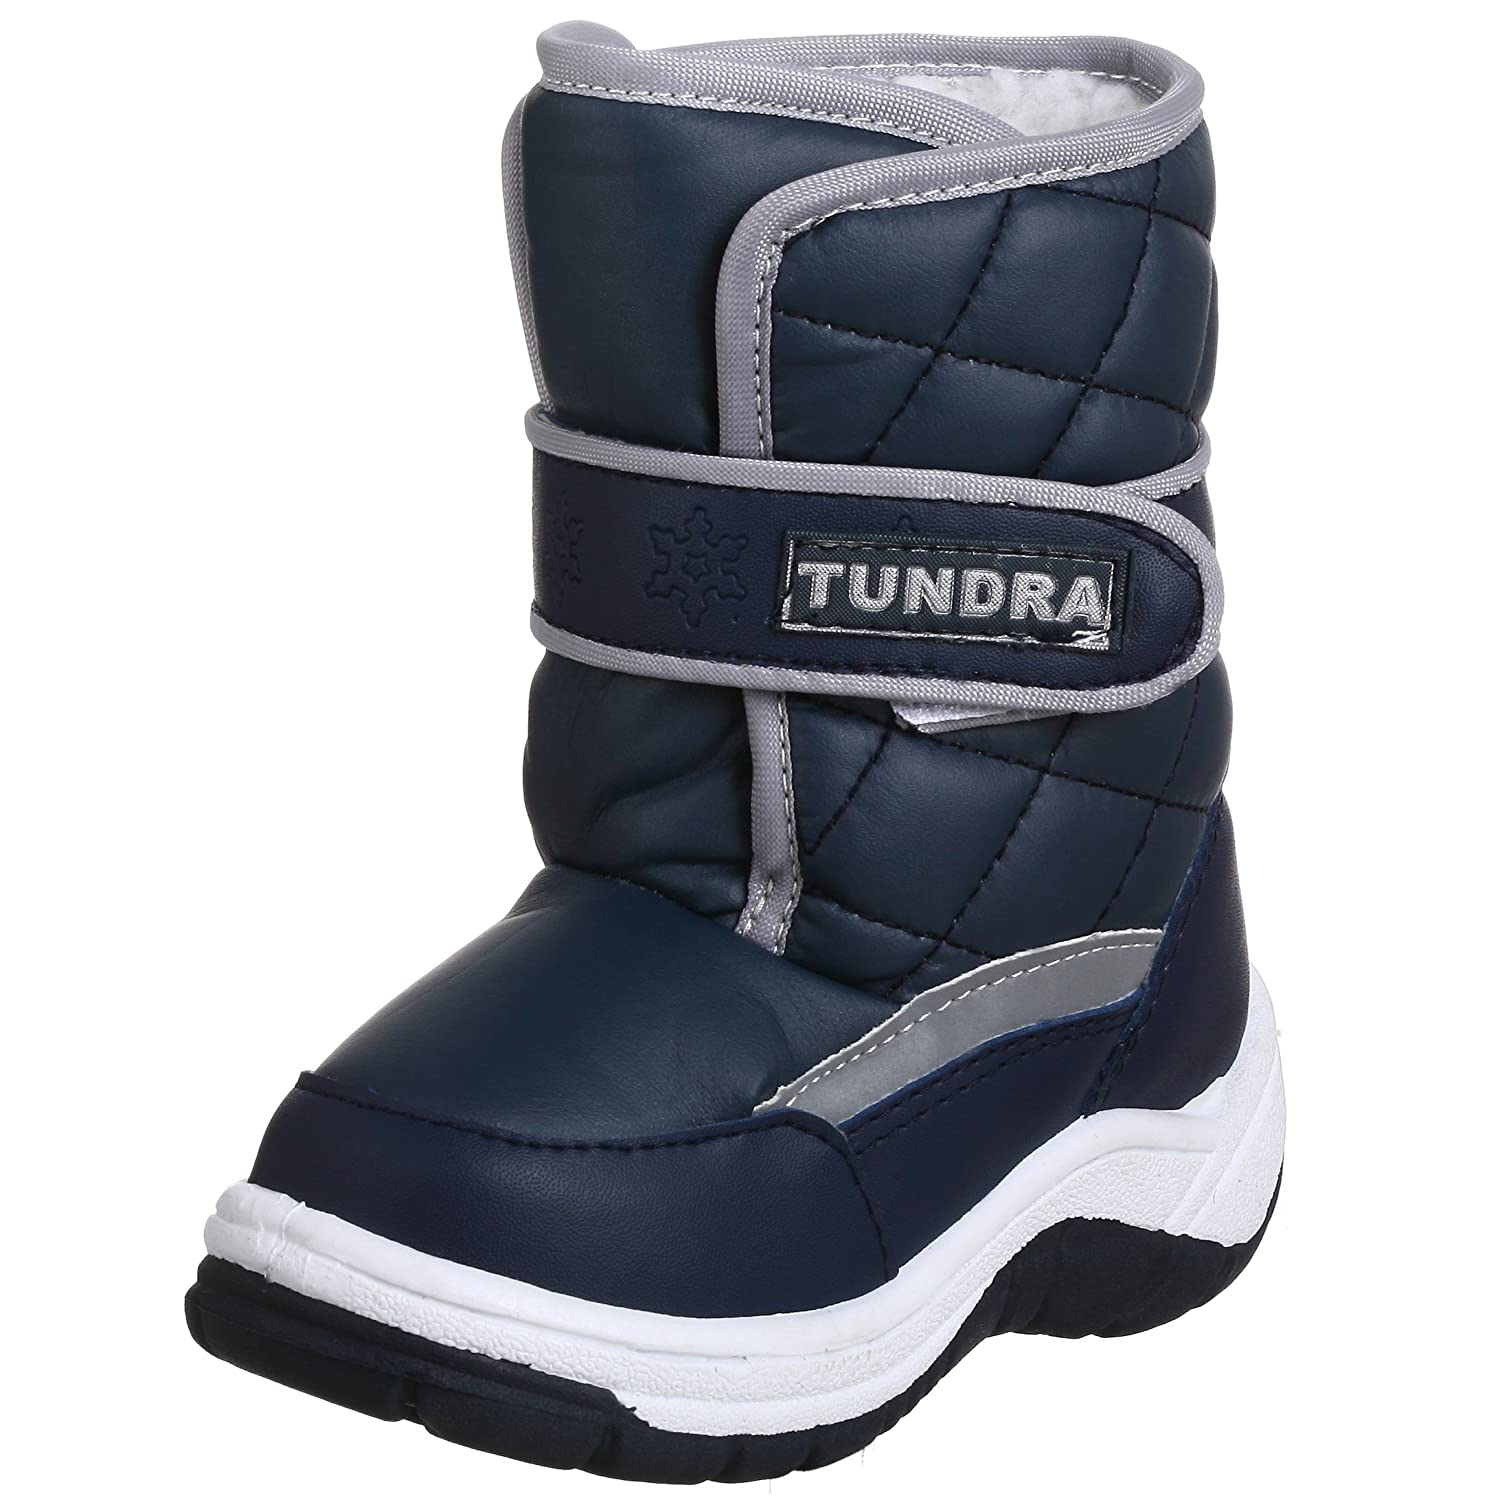 tundra snow boots boots price reviews 2017